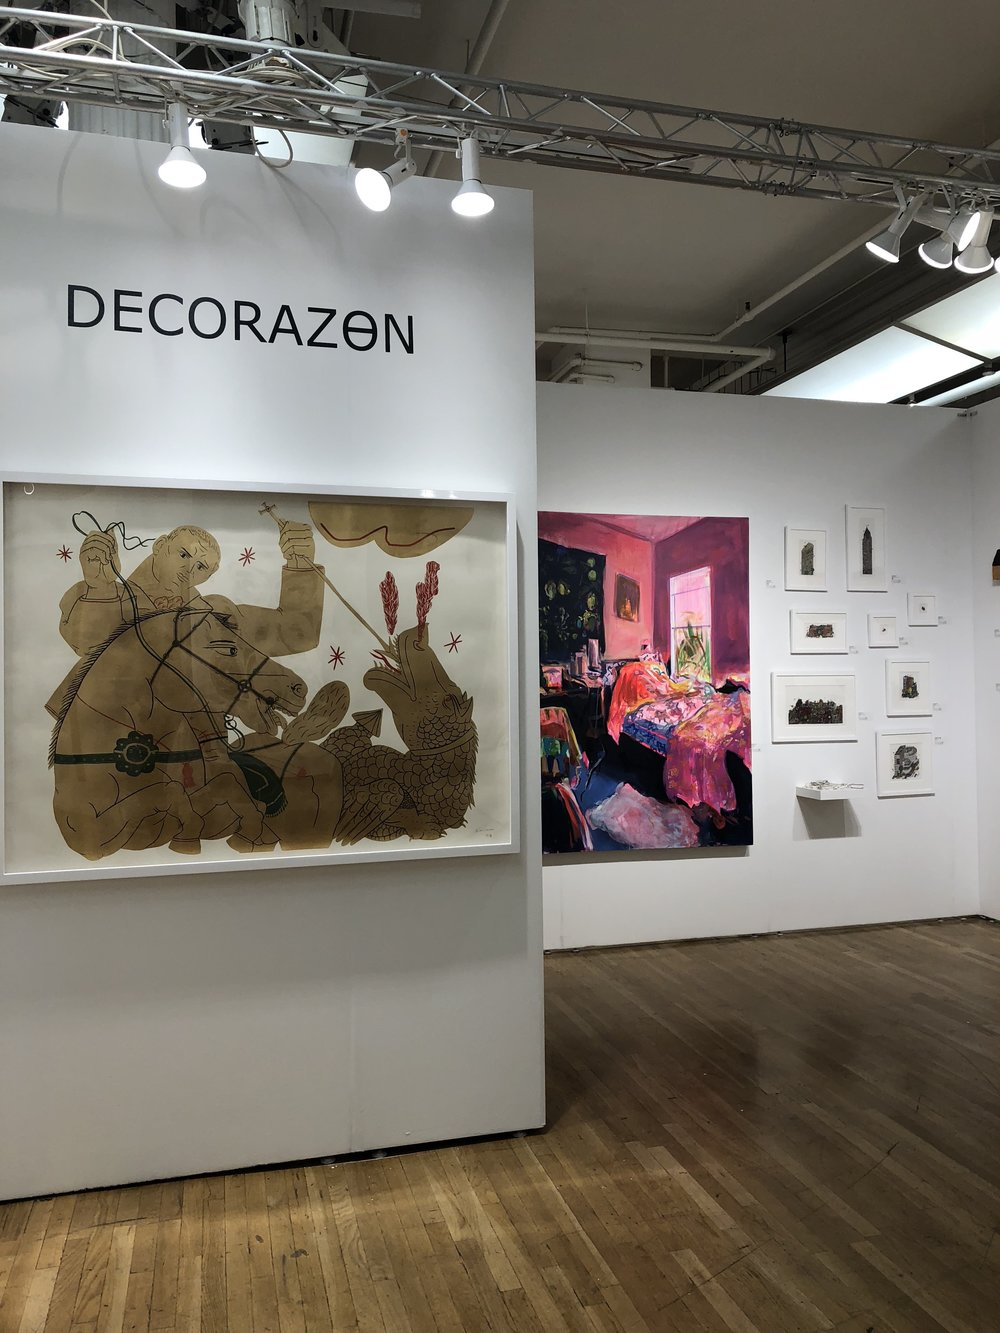 My 6 ft. painting at Affordable Art Fair in NYC last month (right), total dream come true!